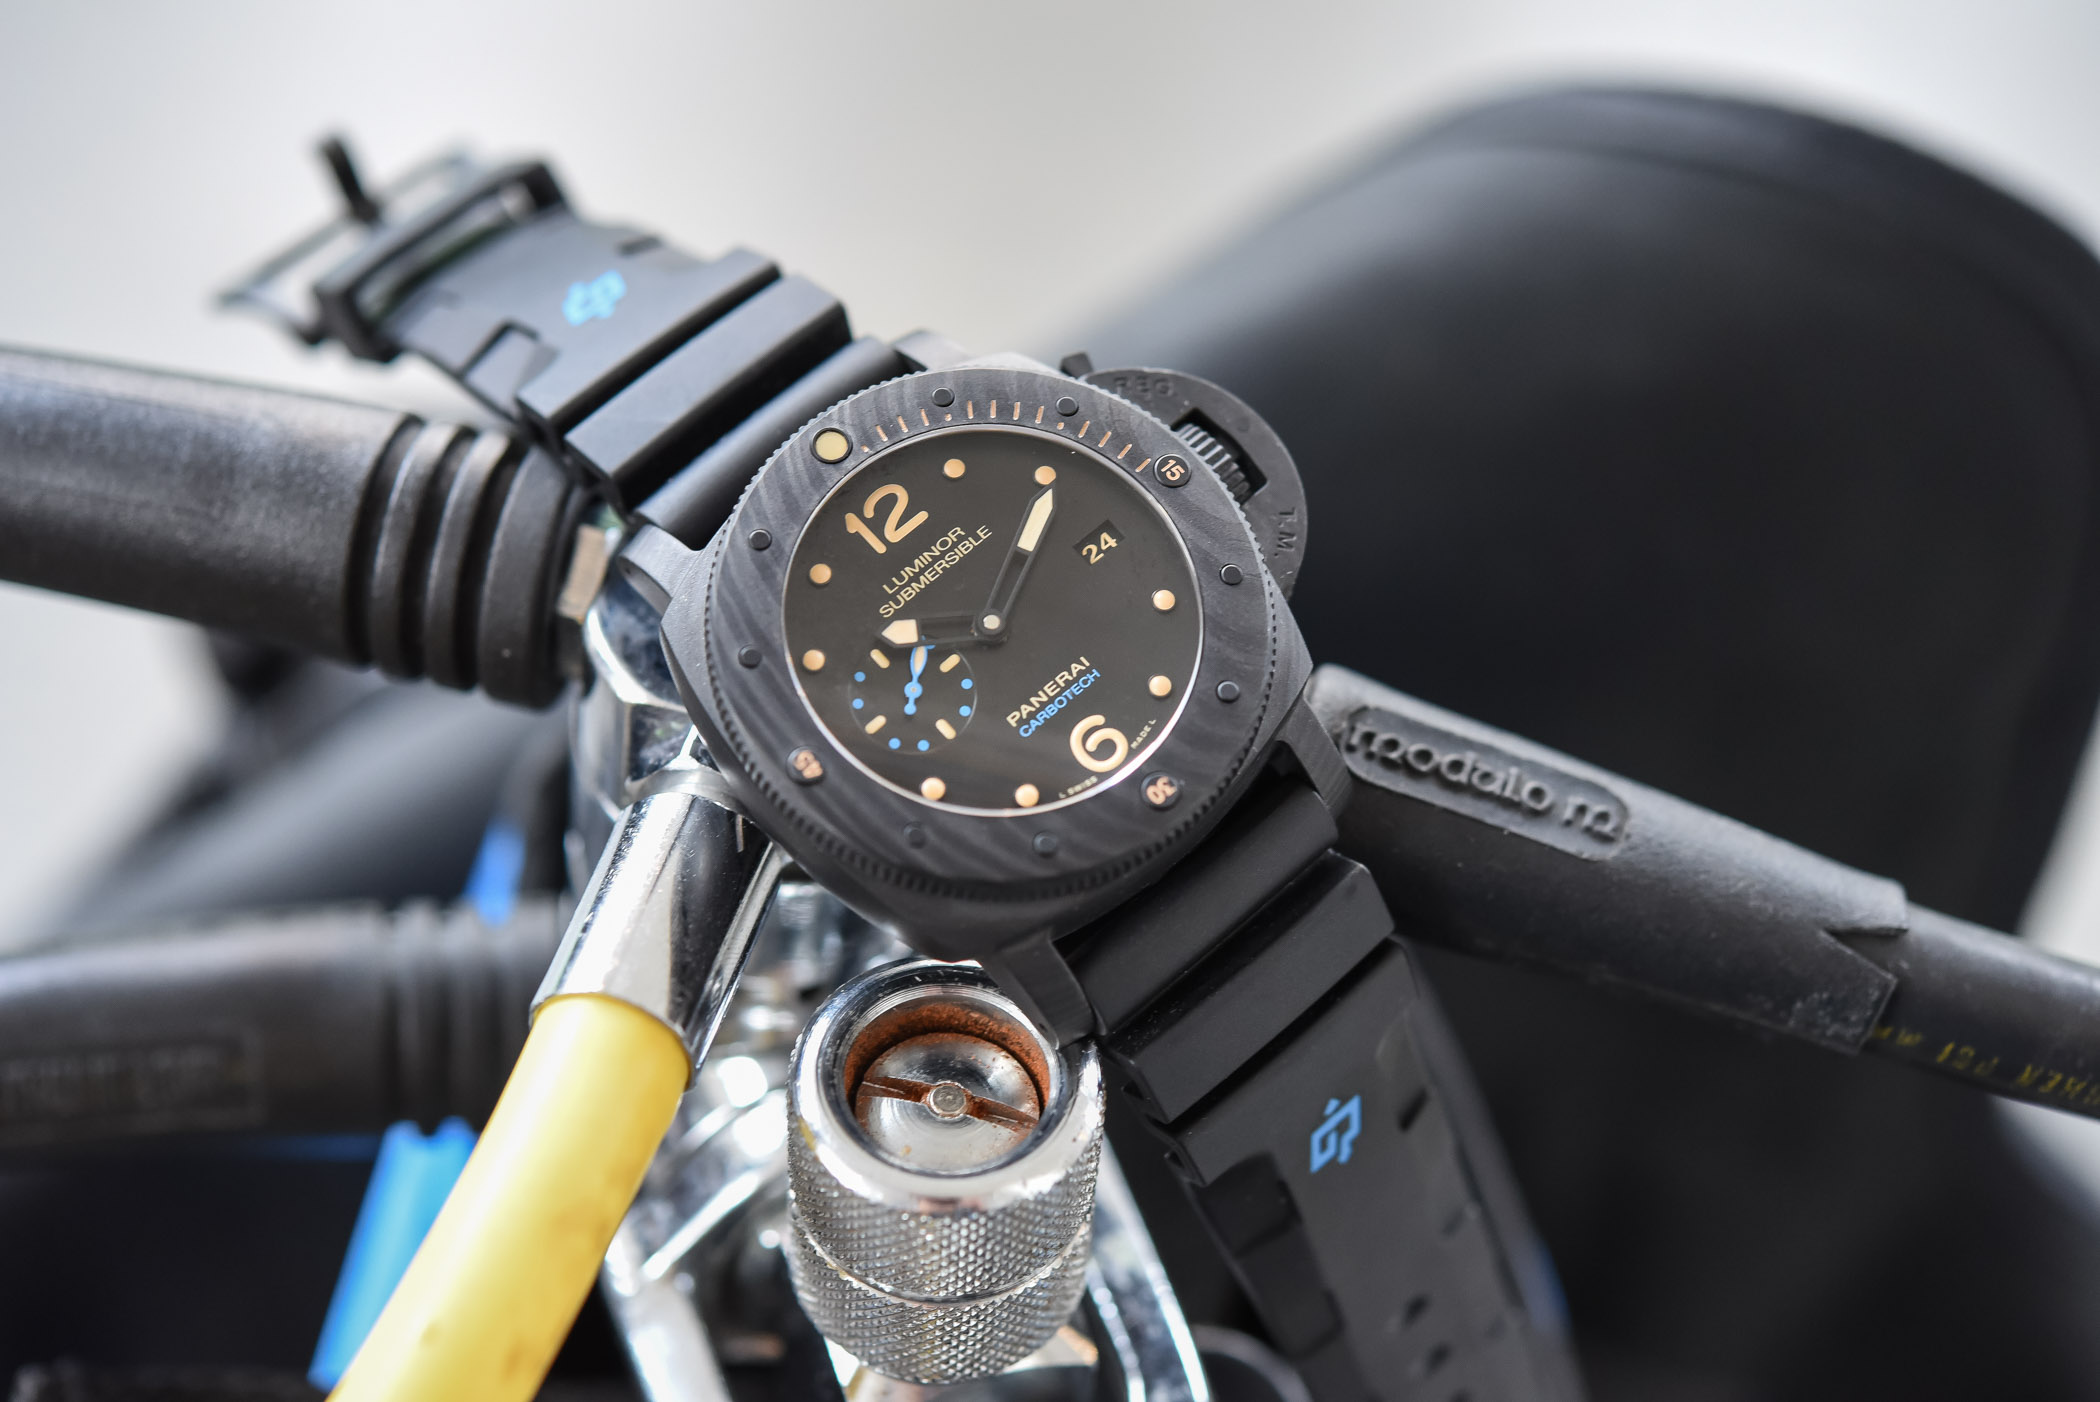 Panerai Luminor Submersible 1950 Carbotech 3 Days Automatic 47mm PAM00616